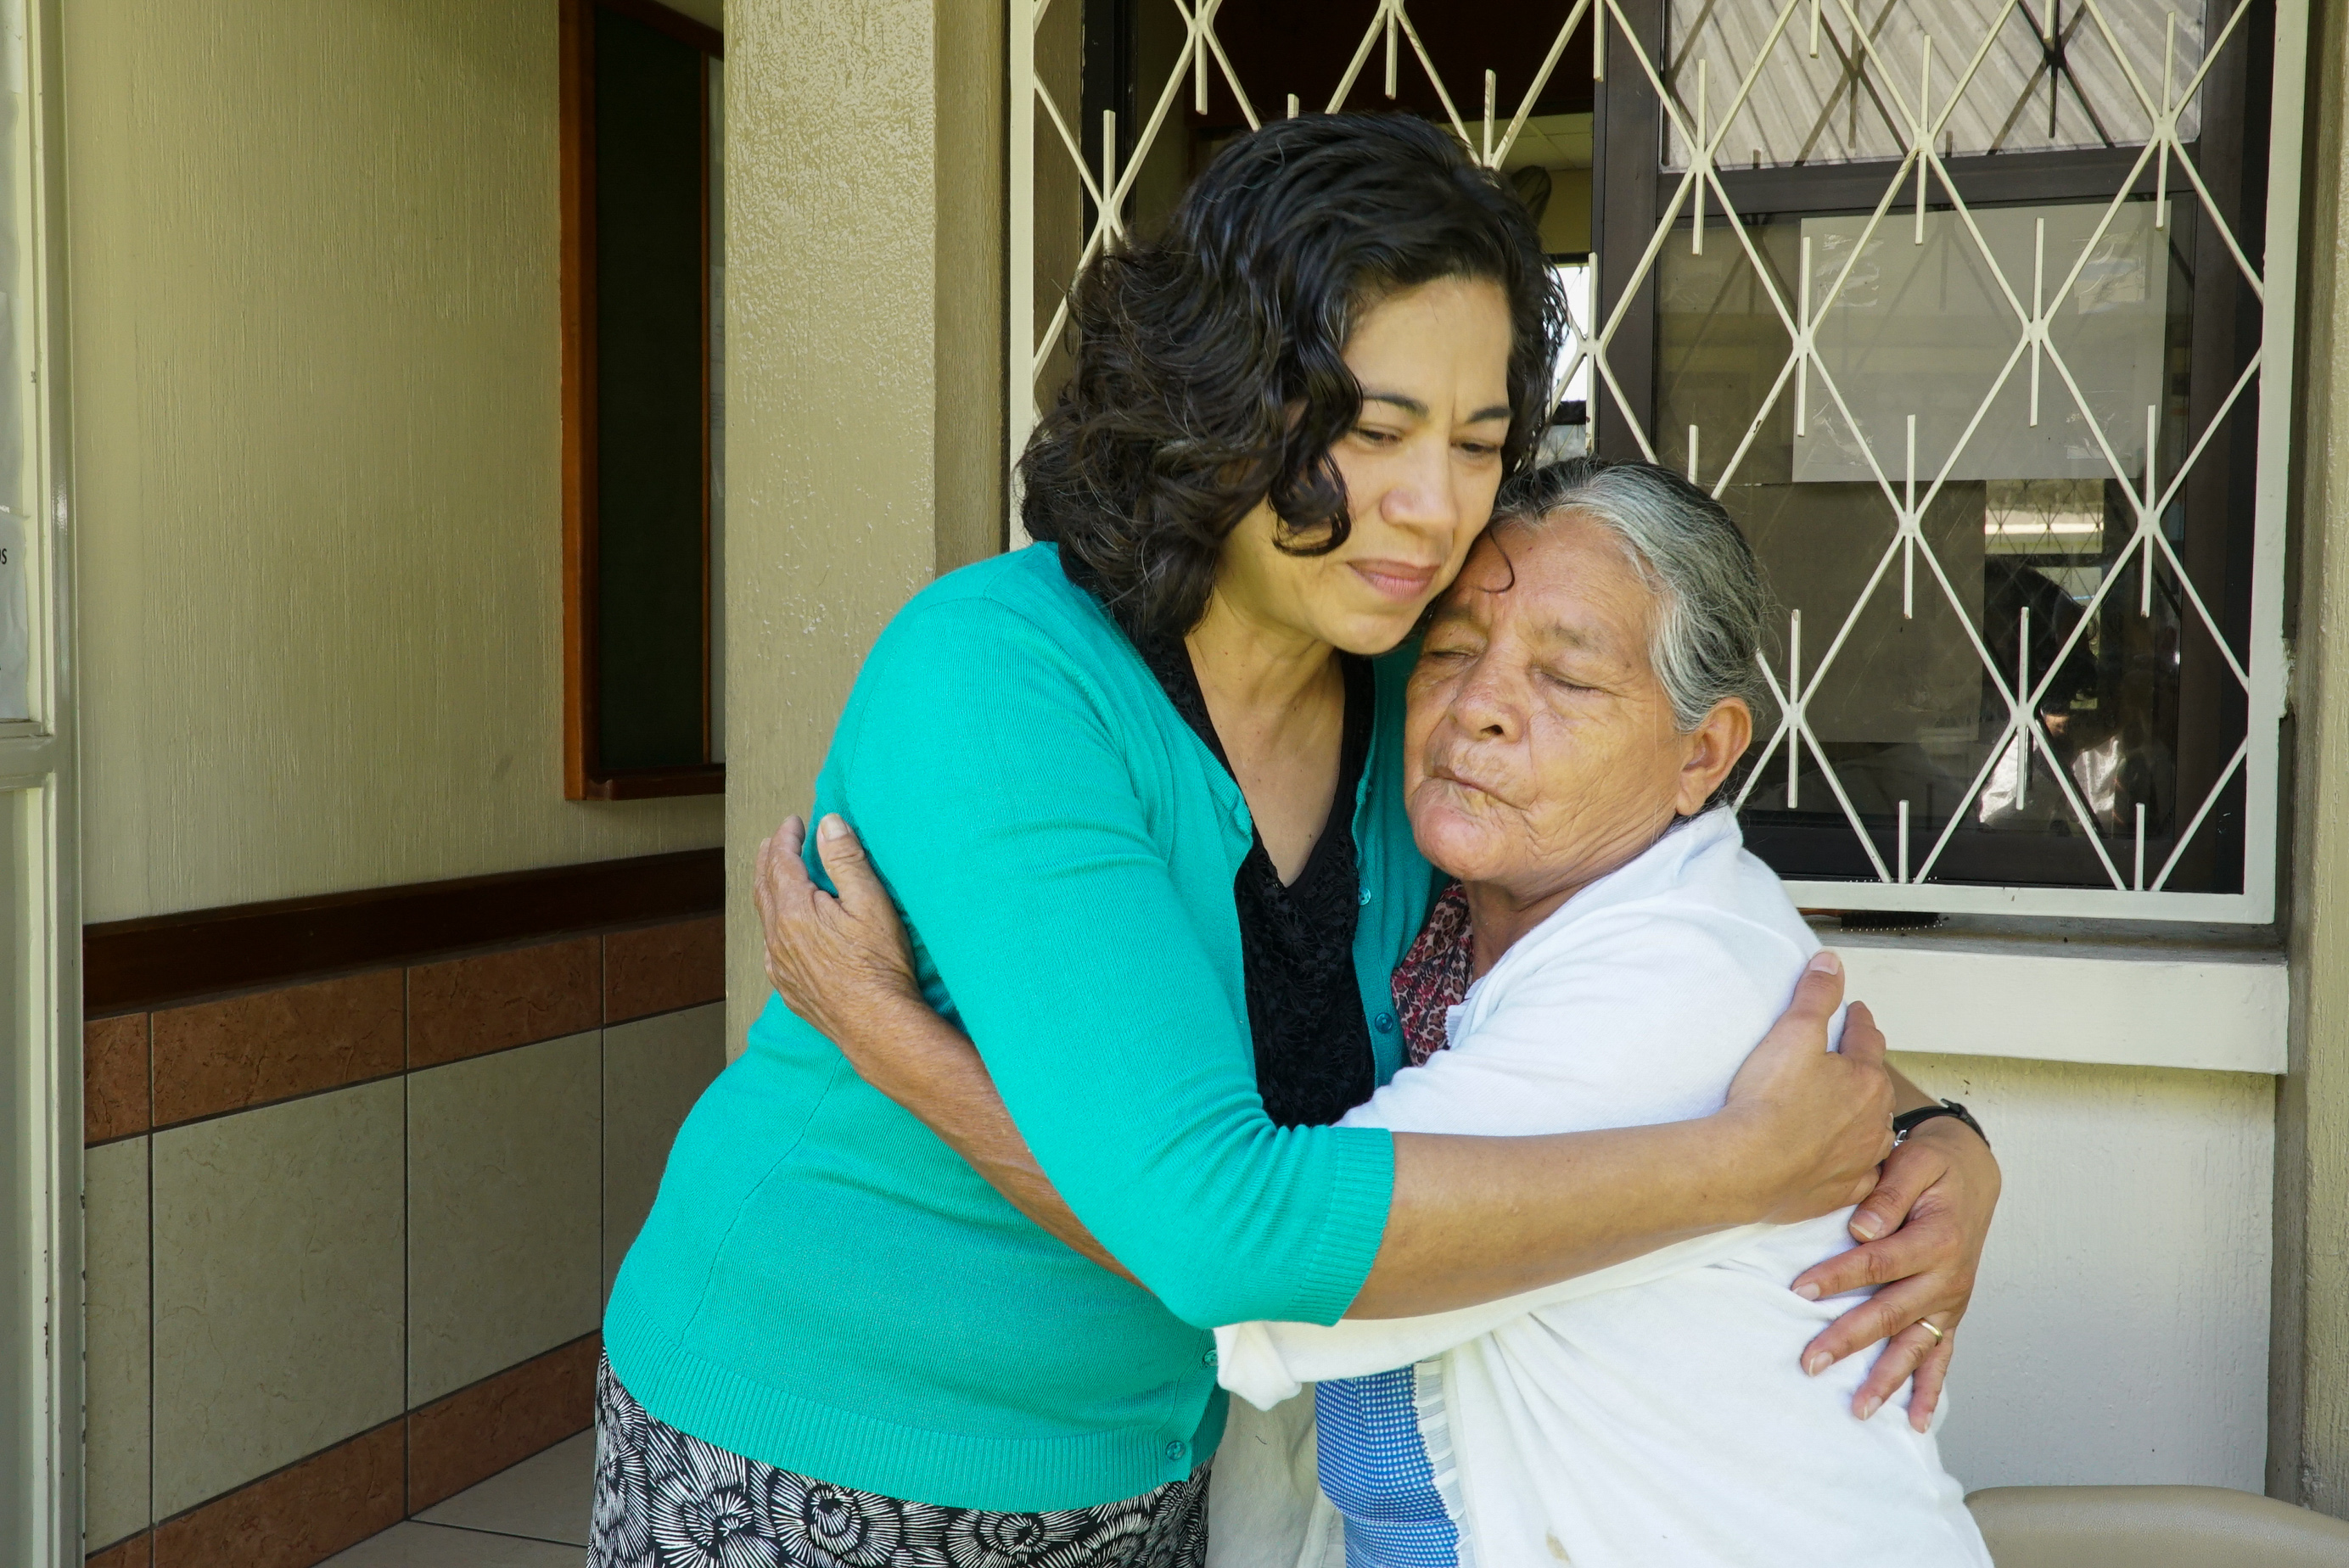 Sister Reyna I. Aburto, second counselor in the Relief Society general presidency, gives a hug to a Church member who is living in temporary housing following a volcano eruption in Guatemala, Wednesday, August 29, 2018.